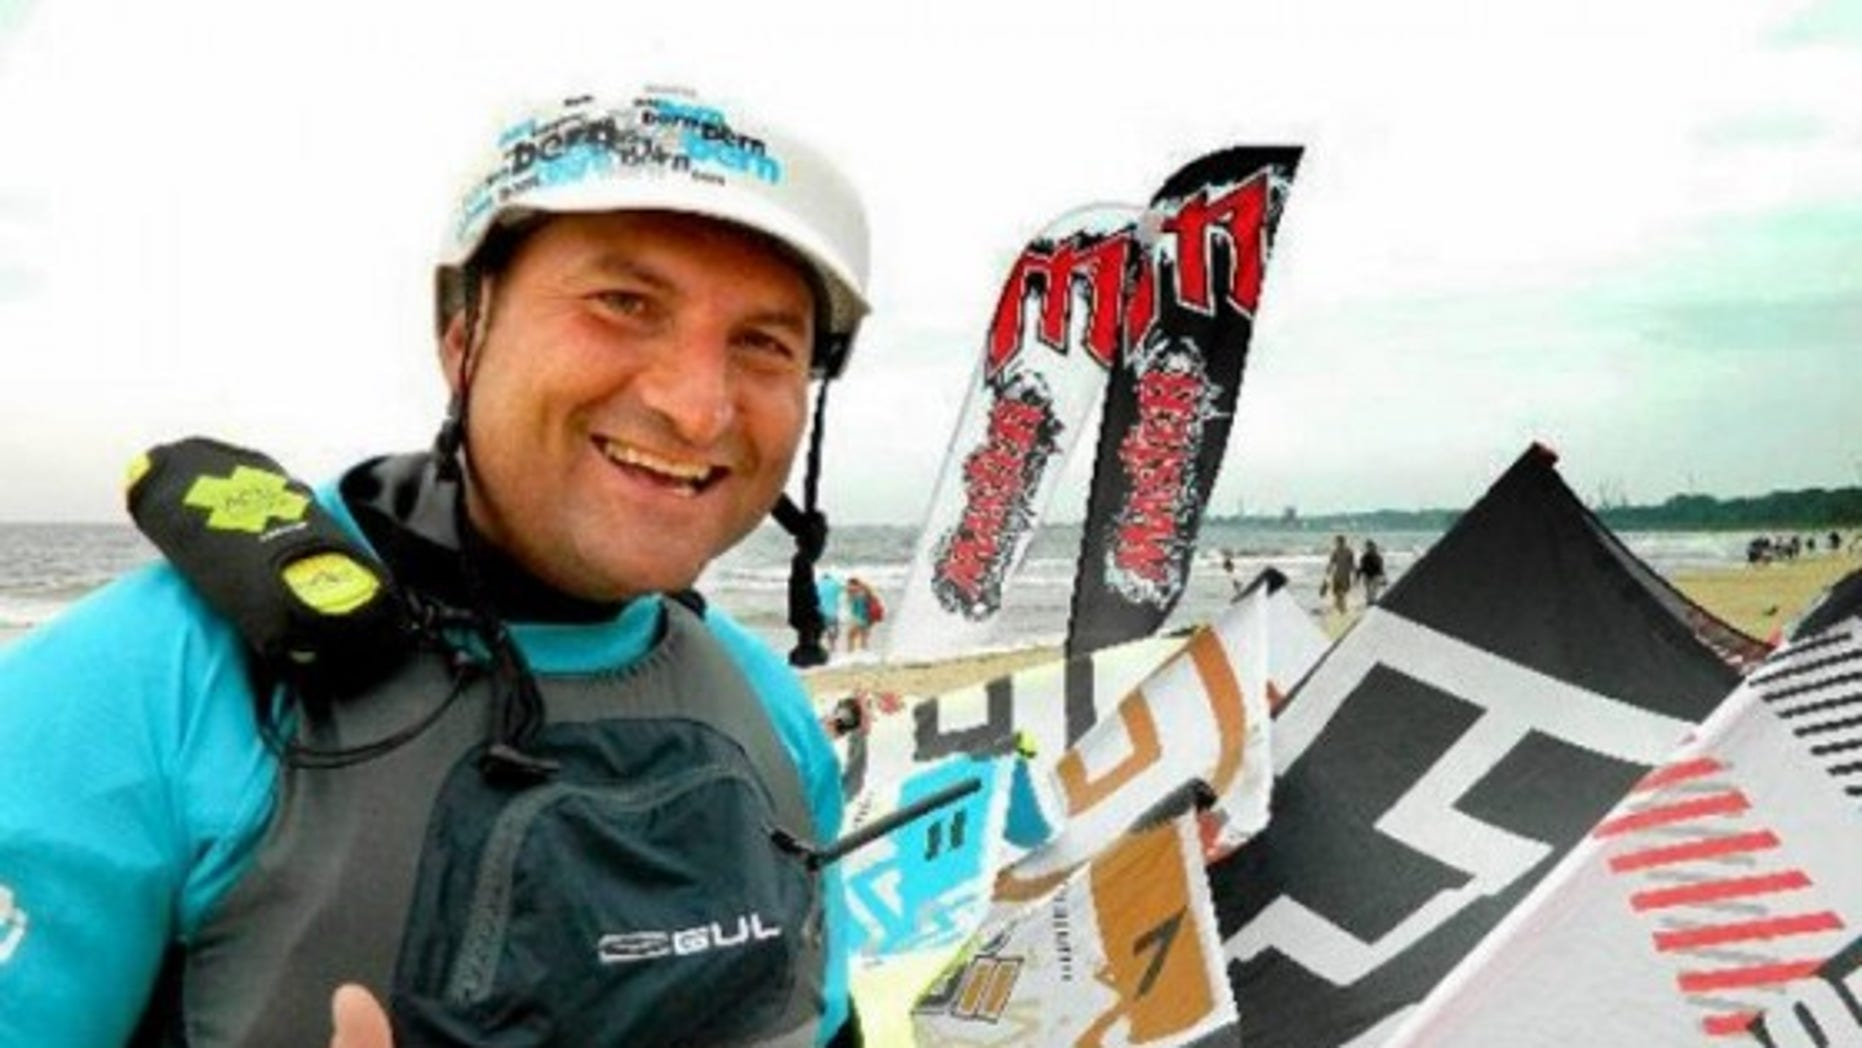 Polish Kiteboarder Jan Lisewski fought off sharks, surviving an attempt to cross the Red Sea.